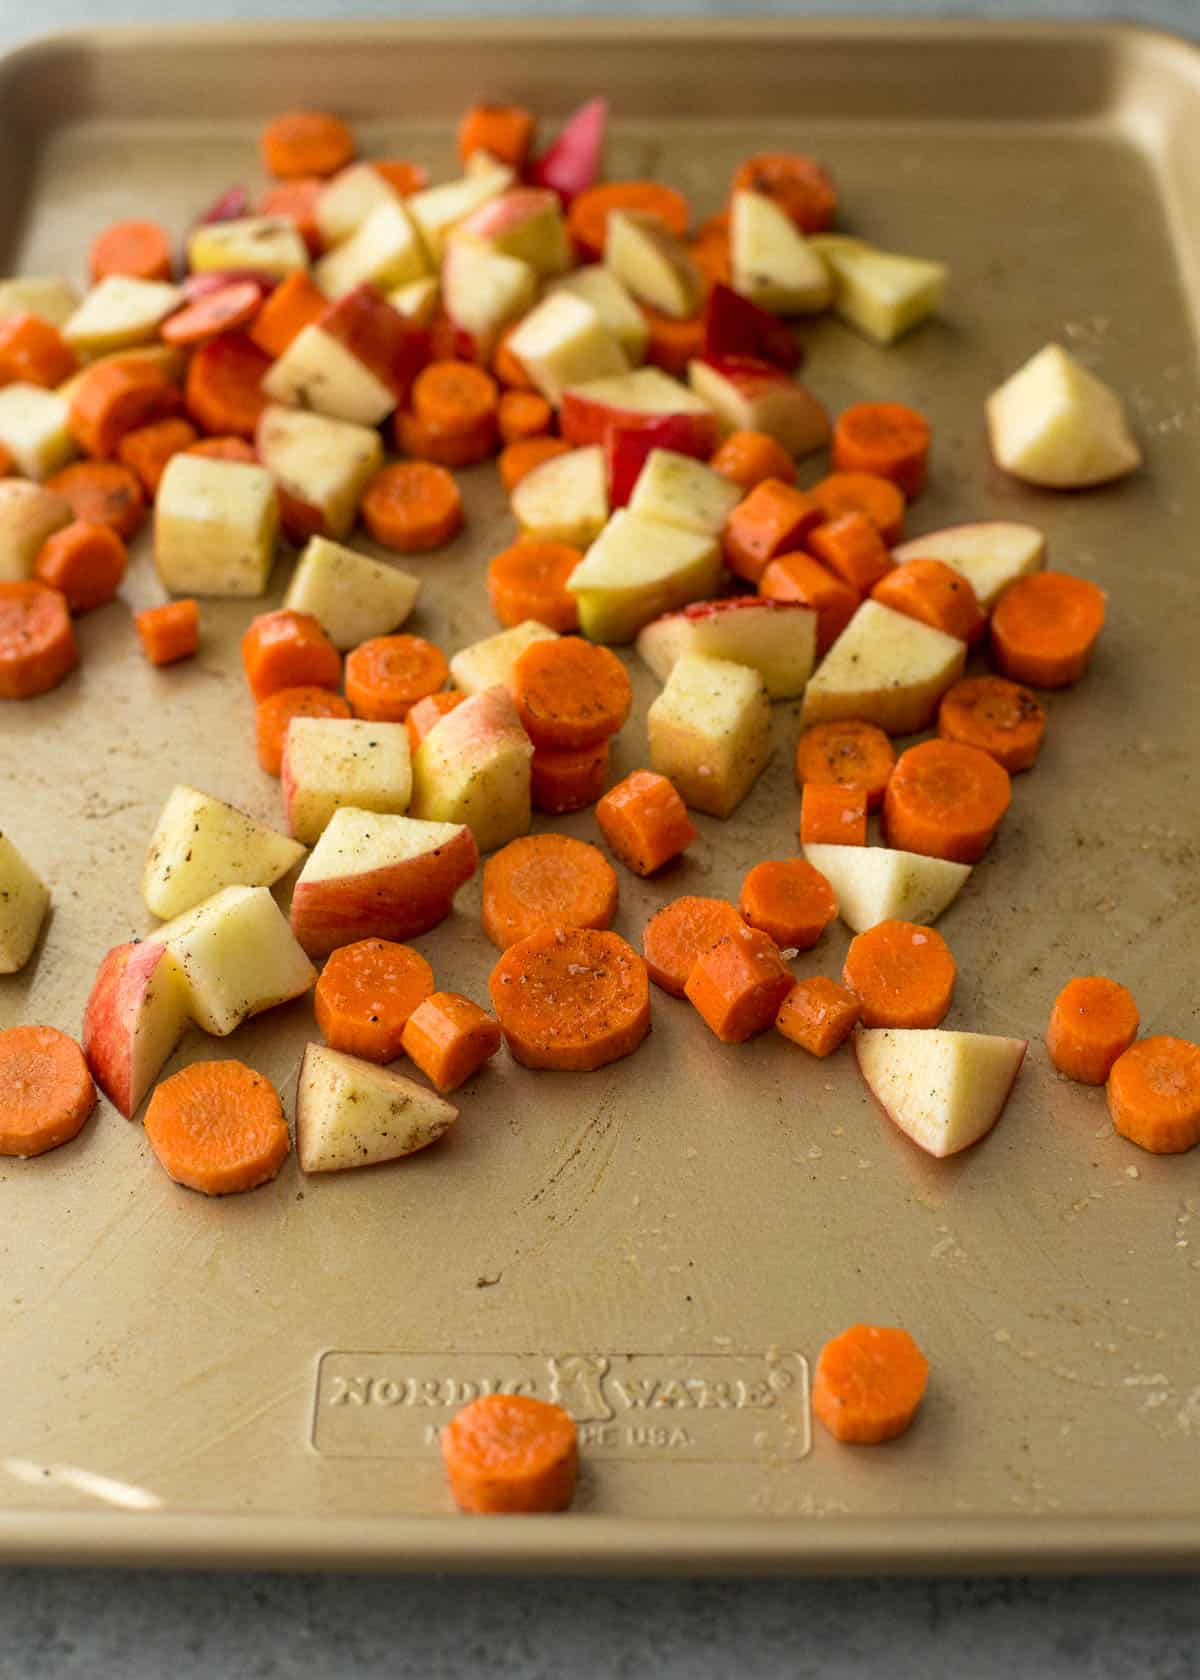 diced carrots and apples on a sheet pan